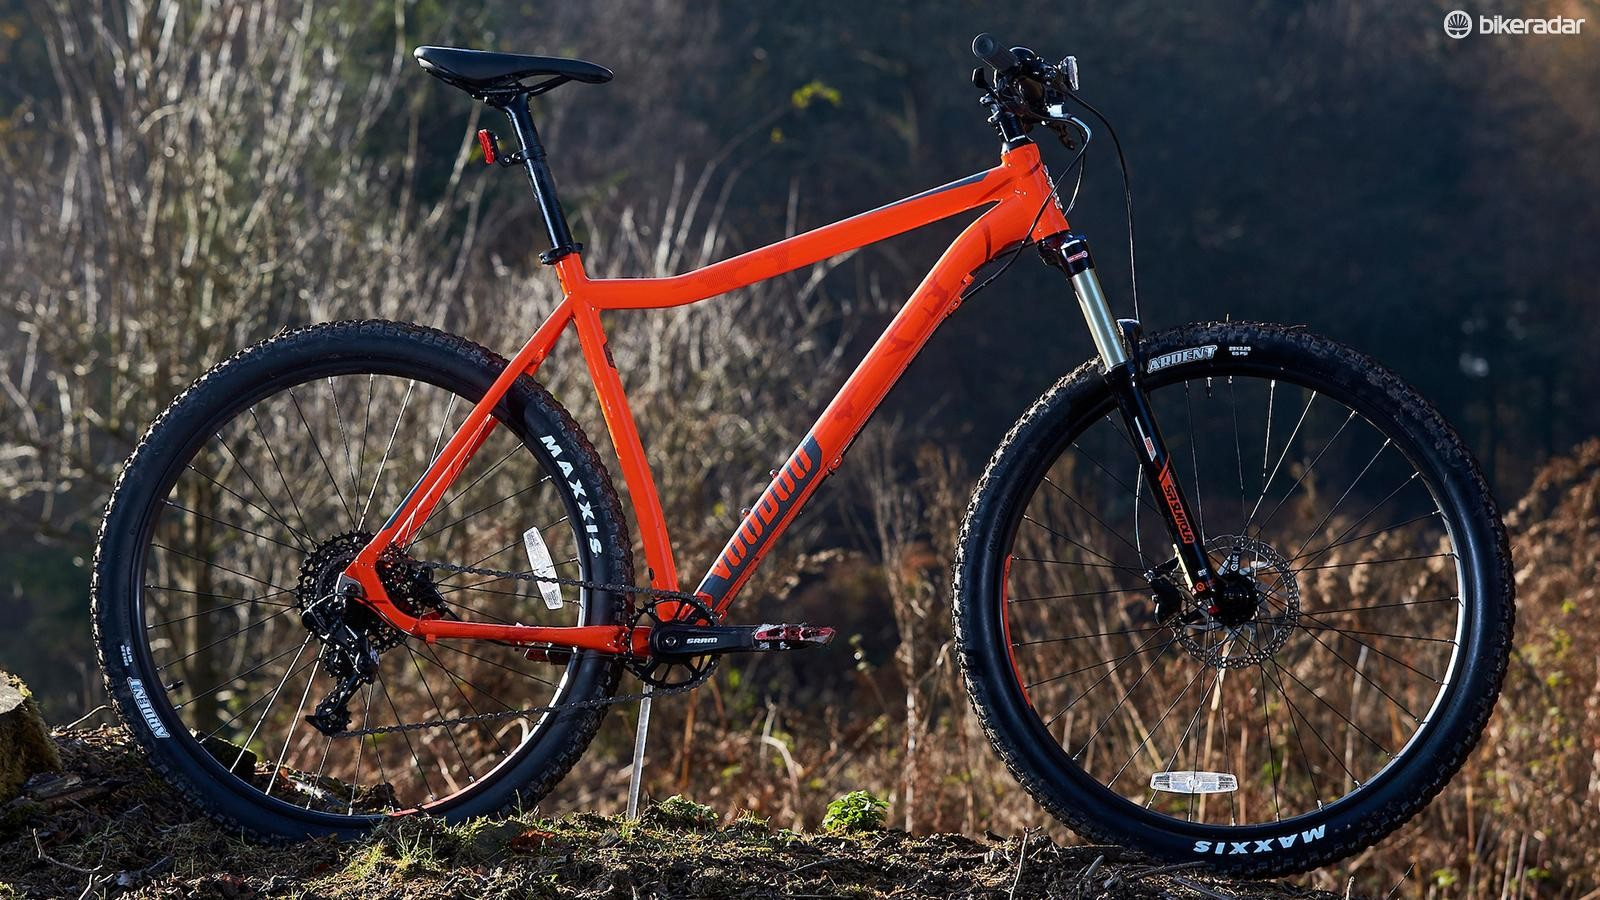 The Voodoo Bizango 29 is quite possibly our favourite hardtail at this price